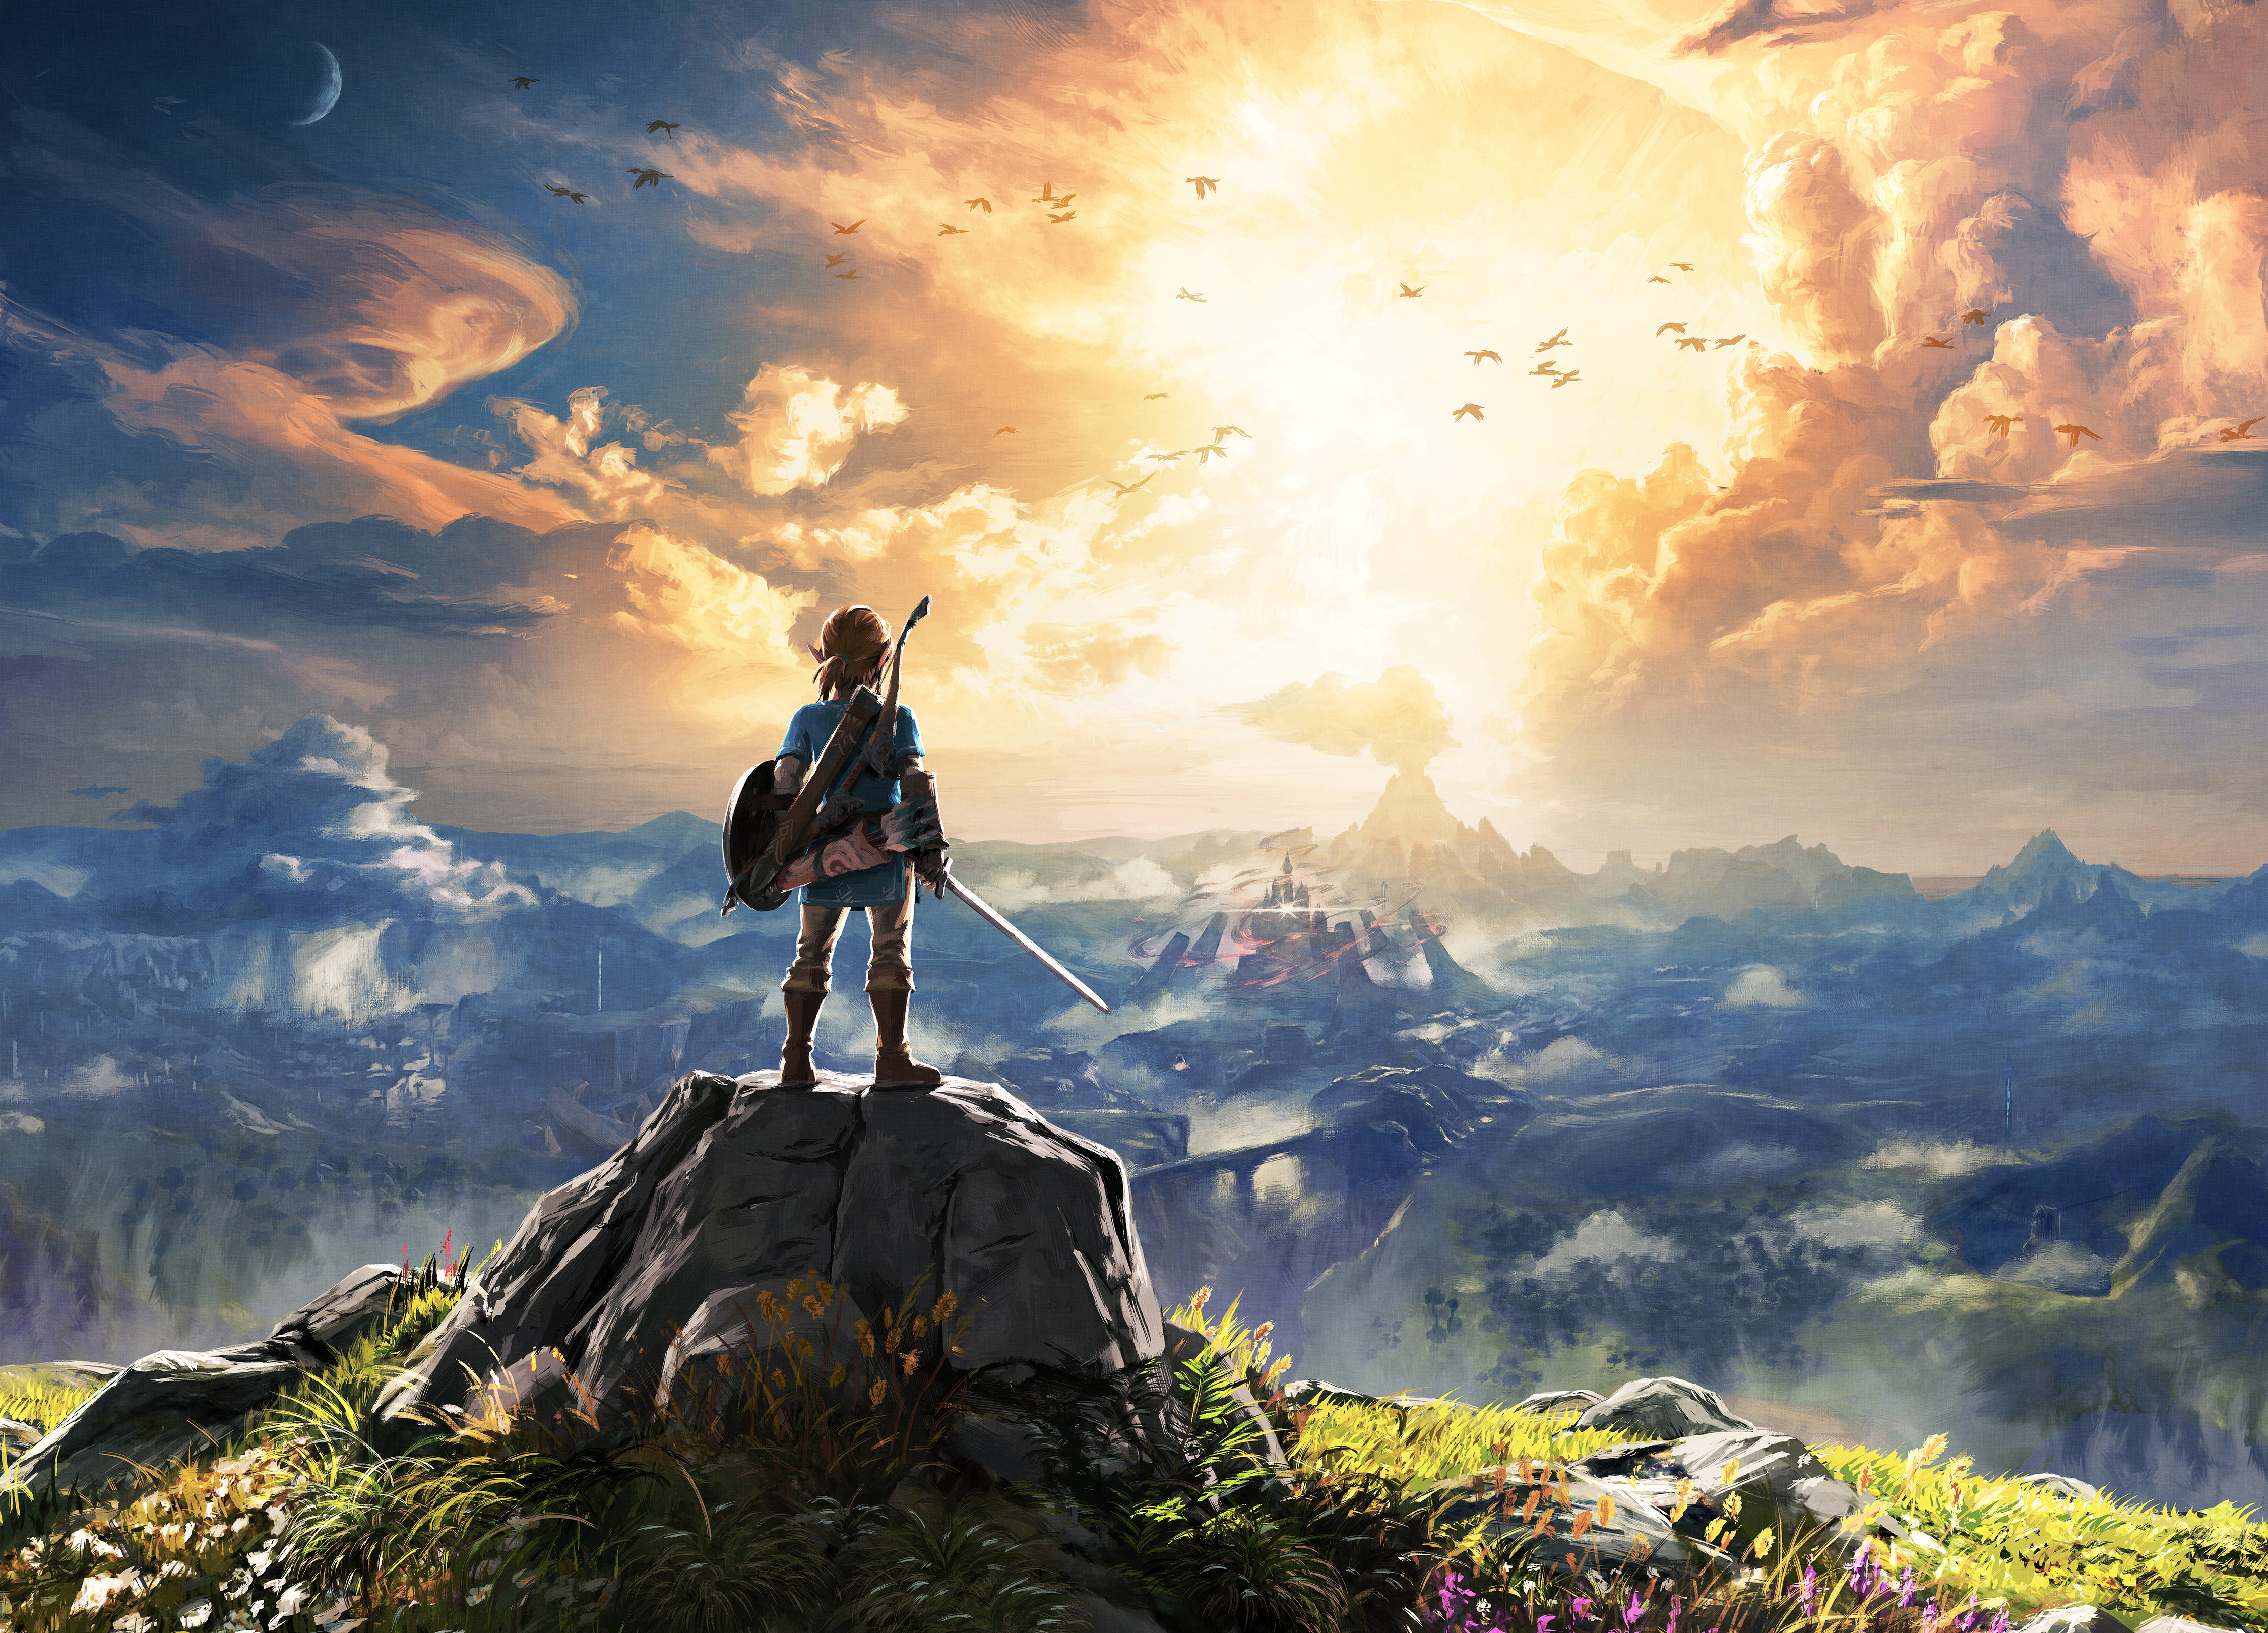 Zelda: Breath of the Wild is already one of the best-reviewed games of all time